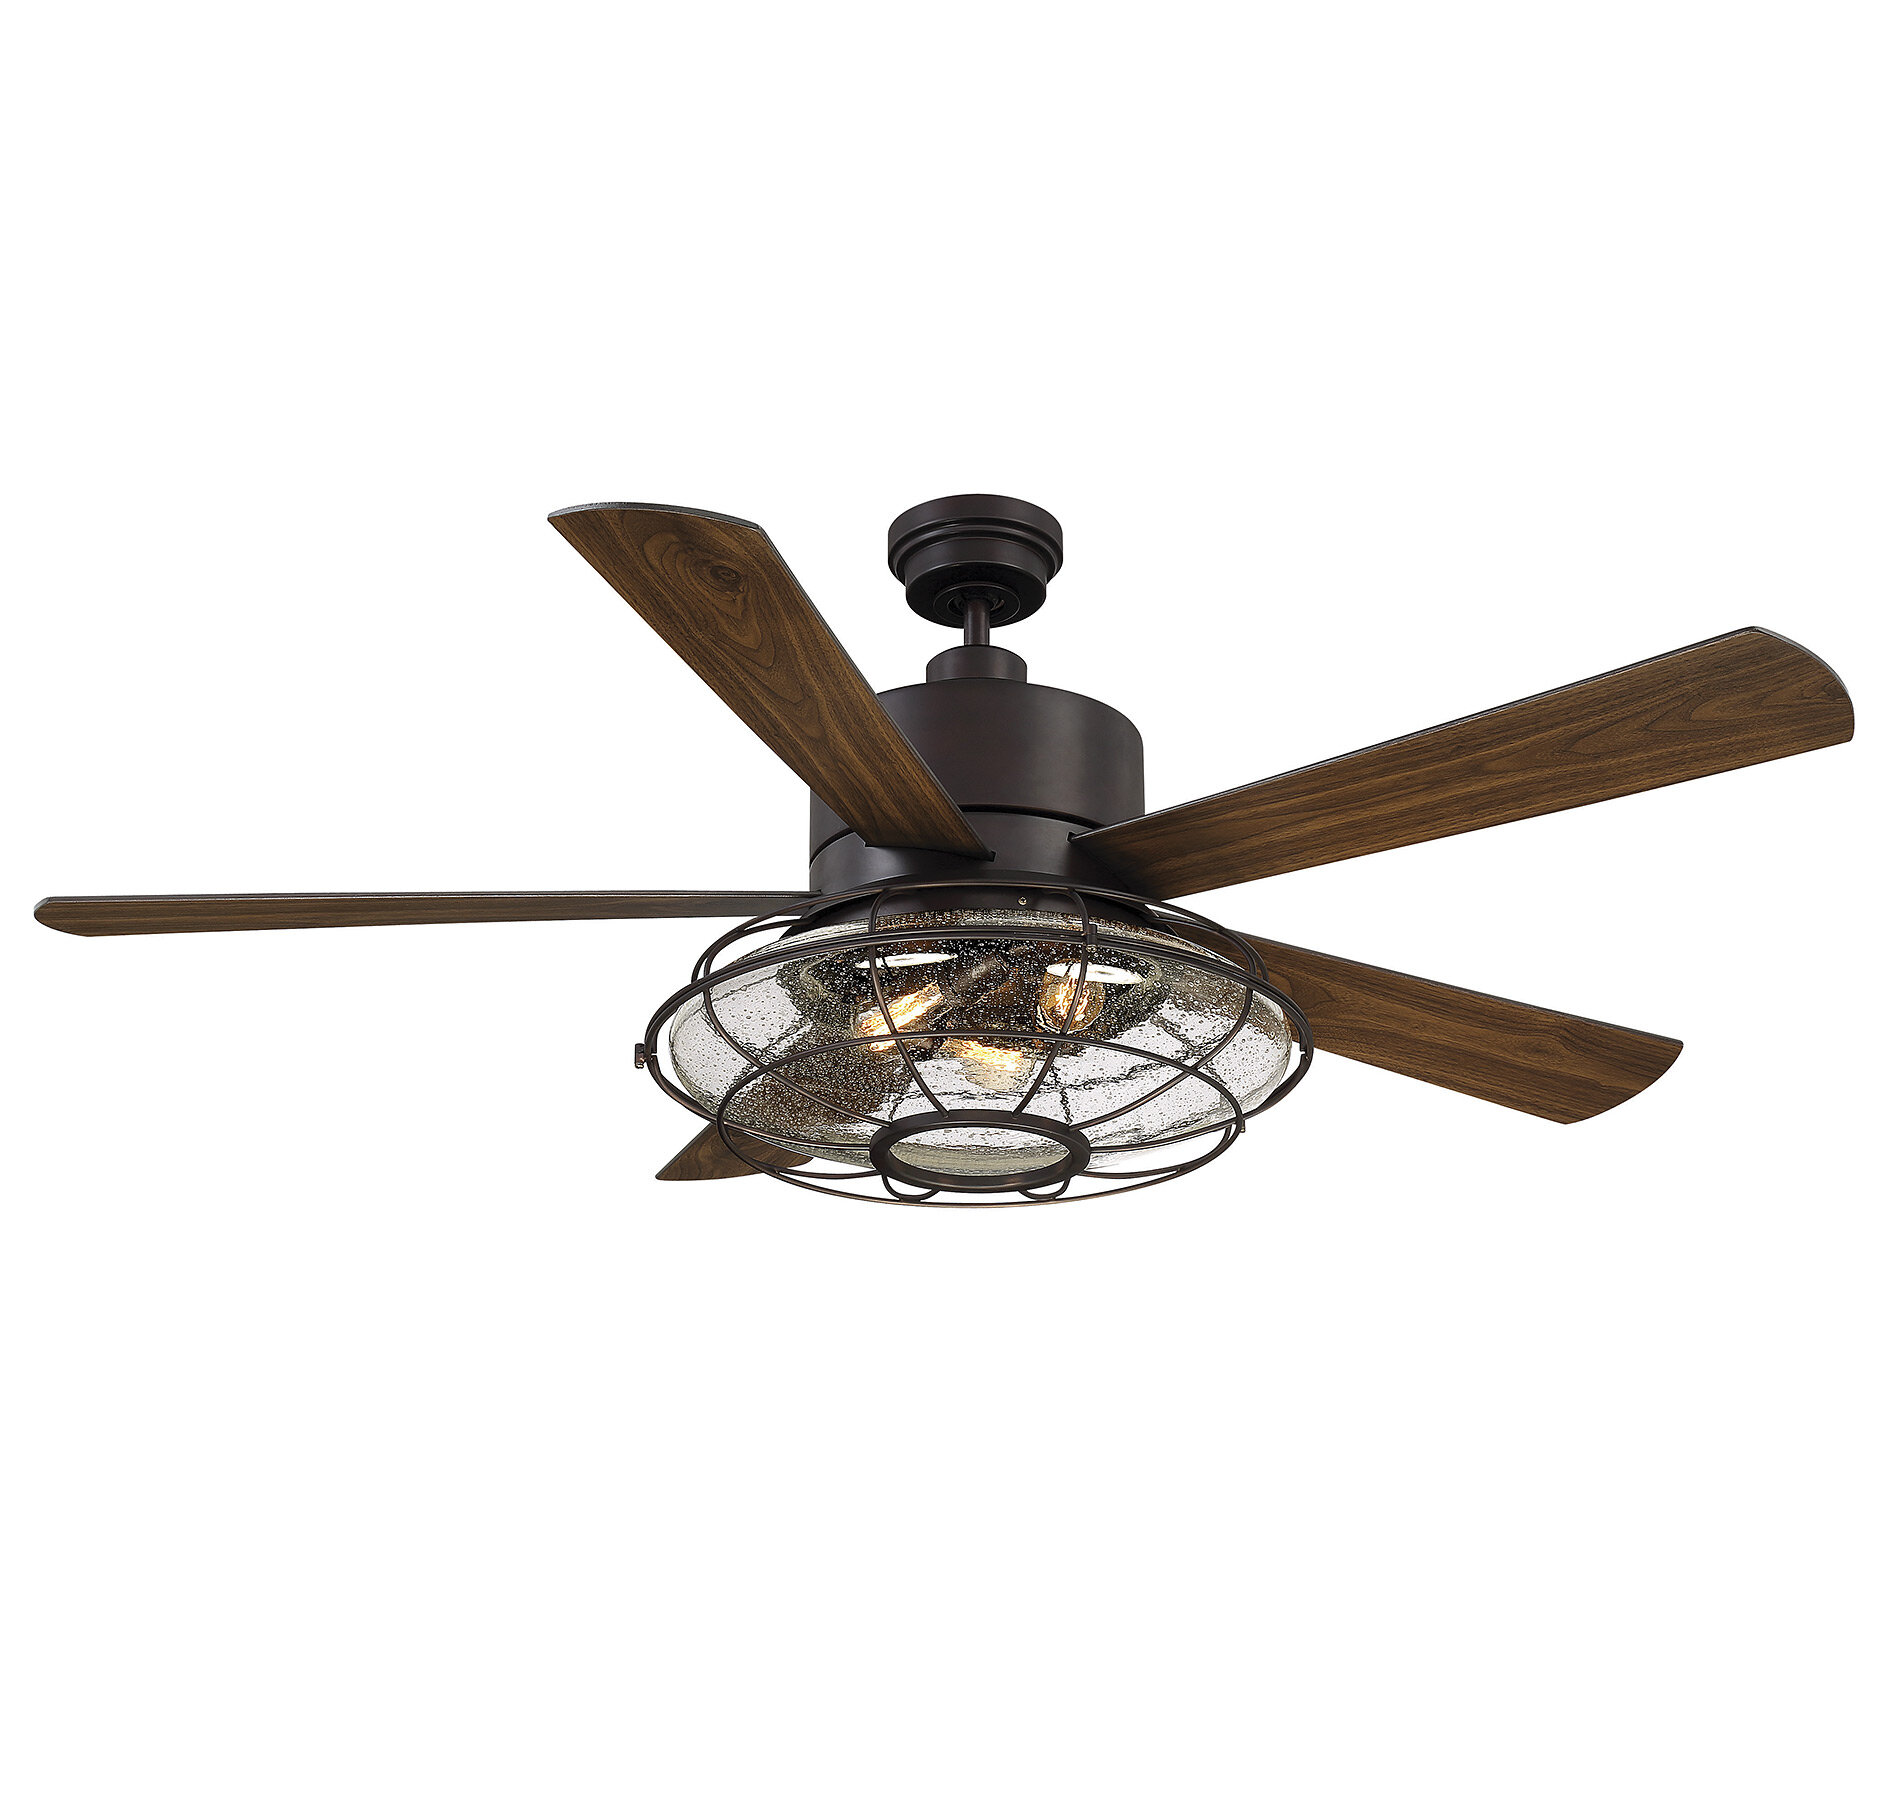 56 Roberts 5 Blade Caged Ceiling Fan With Remote Control And Light Kit Included Reviews Joss Main